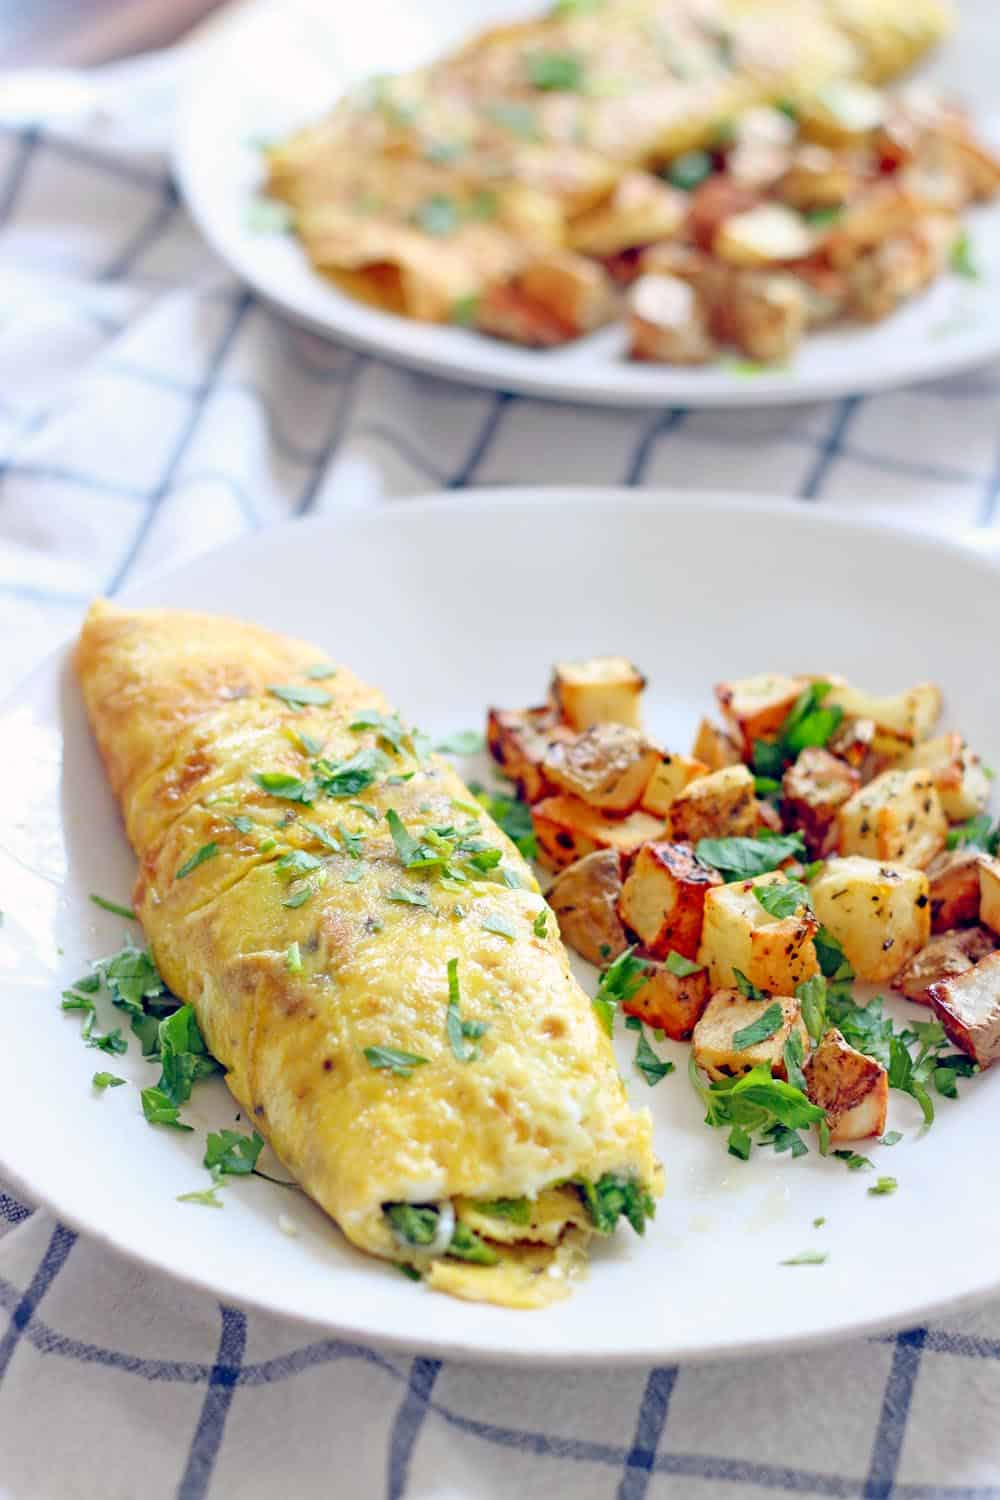 White plate holding Spring omelette with a side of cubed, roasted potatoes, and sprinkled with chopped herb garnish.